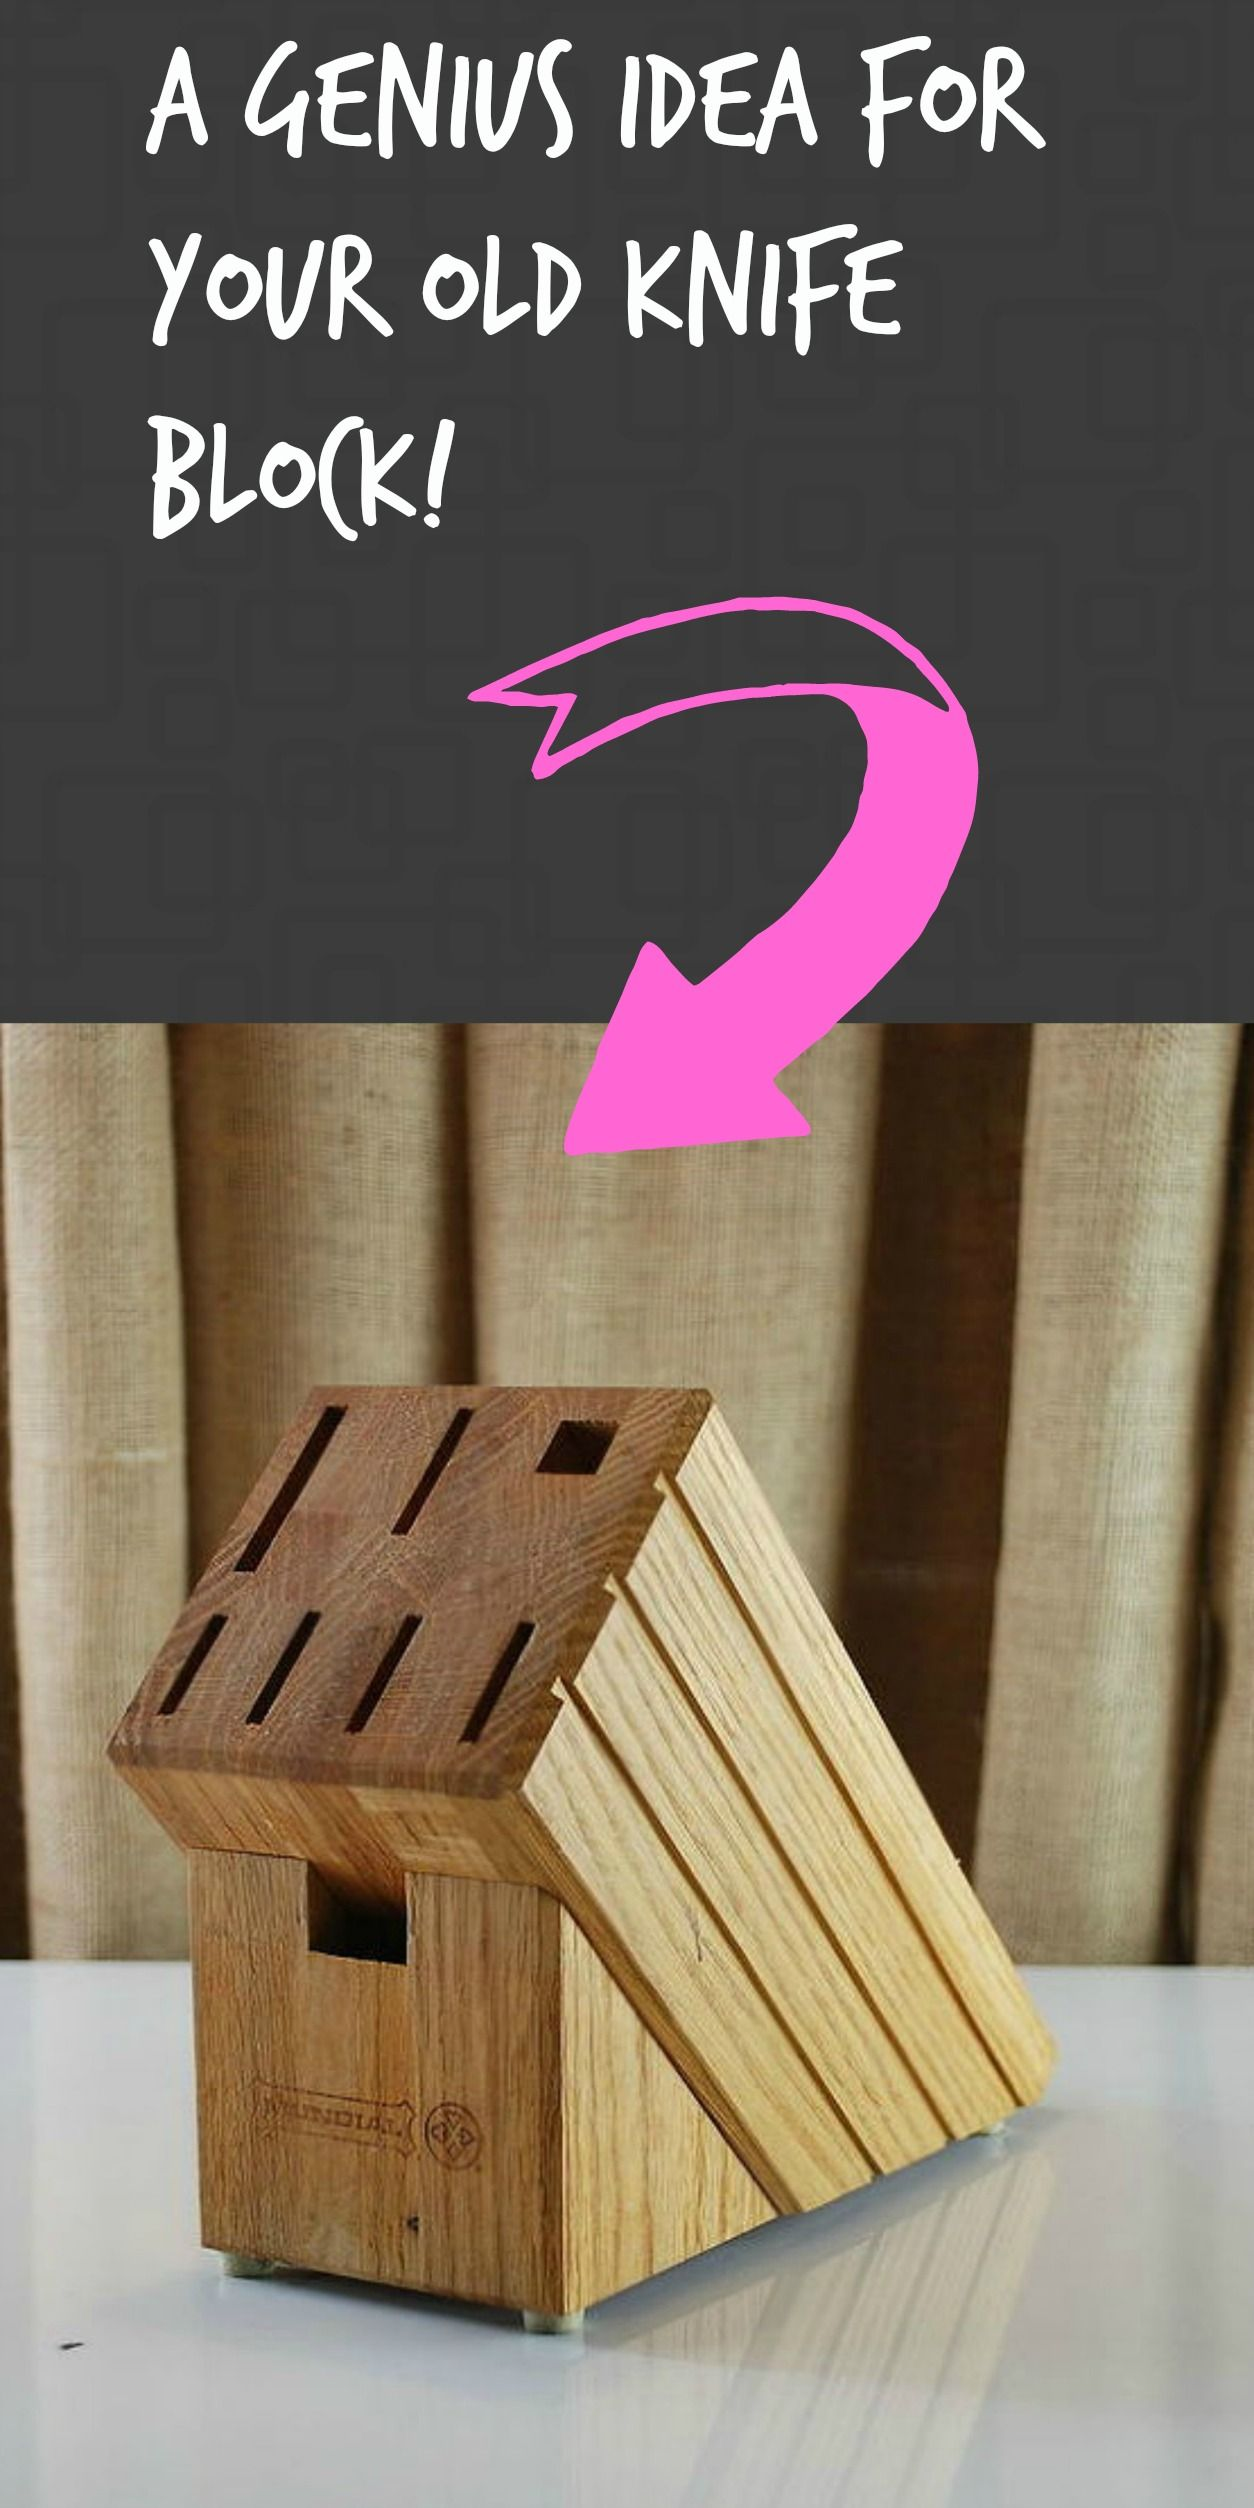 How To Make A Creative Gift Using A Knife Block Upcycling Ideas